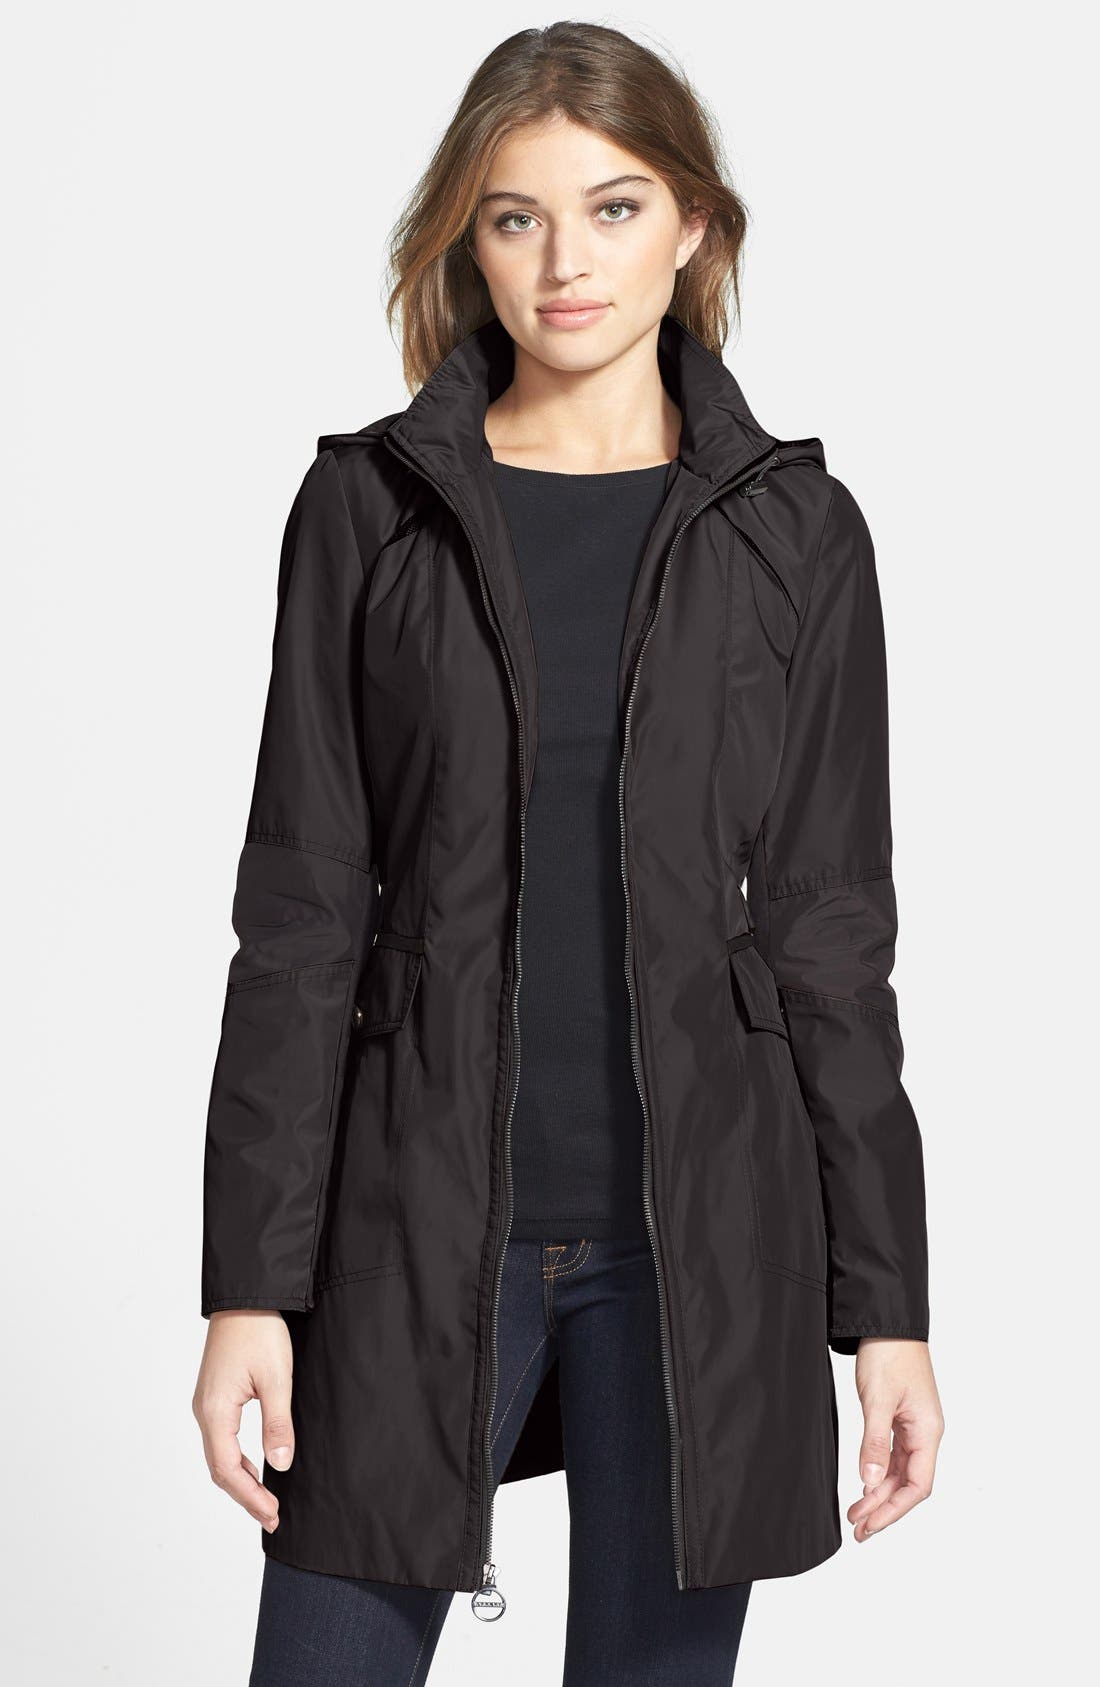 Alternate Image 1 Selected - Laundry by Shelli Segal Packable Colorblock Anorak